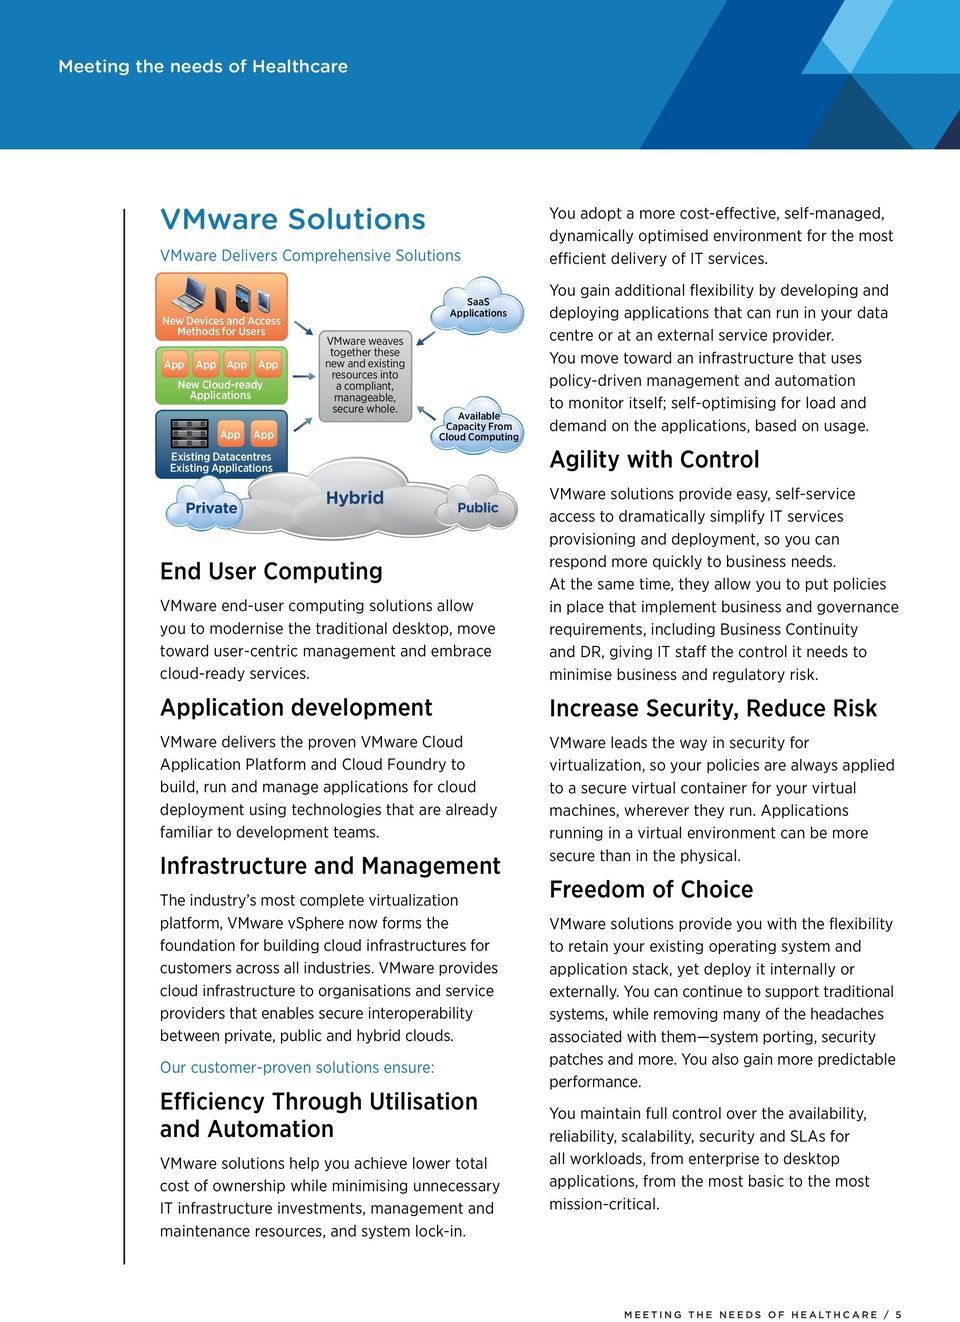 End User Computing SaaS Applications Available Capacity From Cloud Computing VMware end-user computing solutions allow you to modernise the traditional desktop, move toward user-centric management